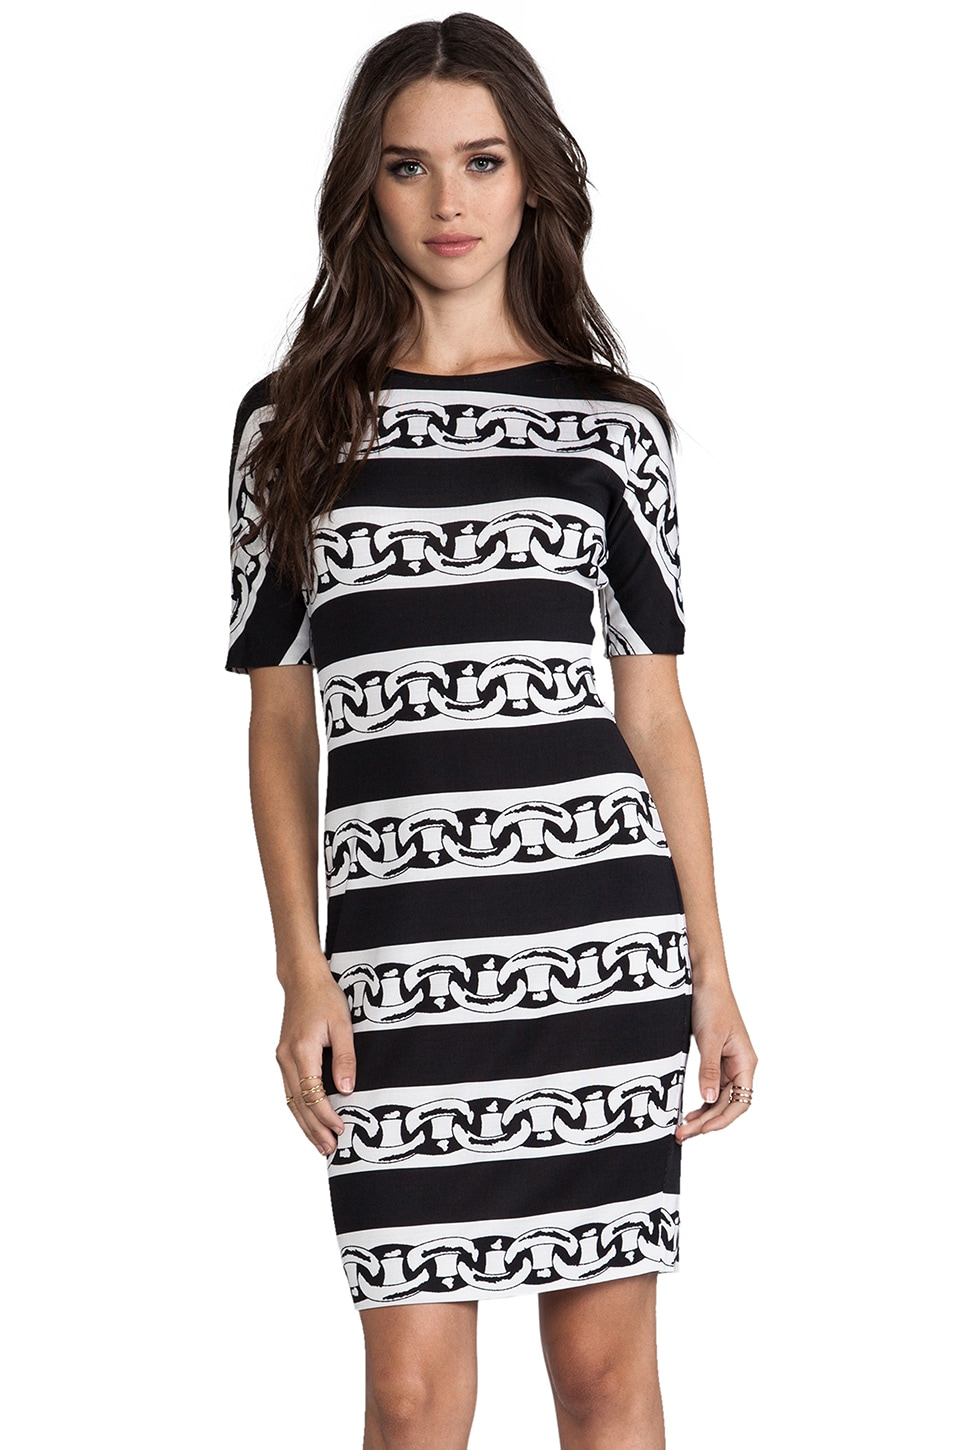 Diane von Furstenberg Brenna Dress in Chain Bands Black